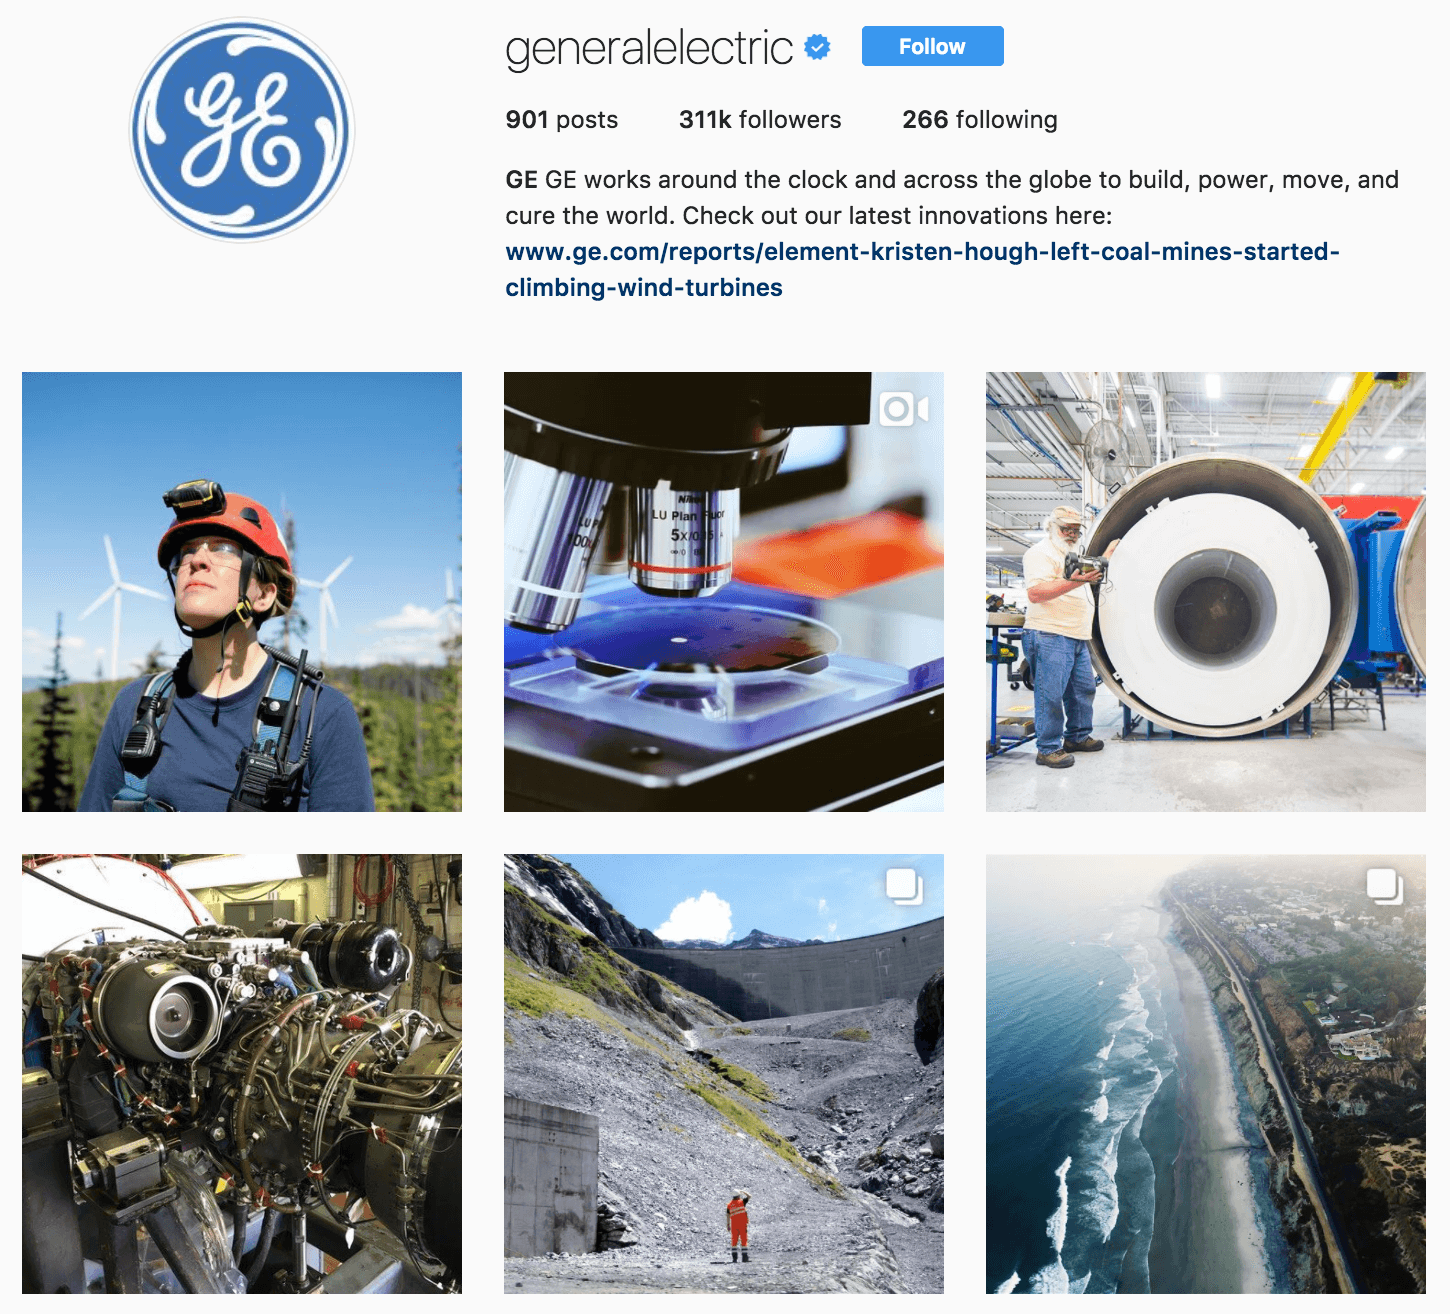 General Electric's Instagram